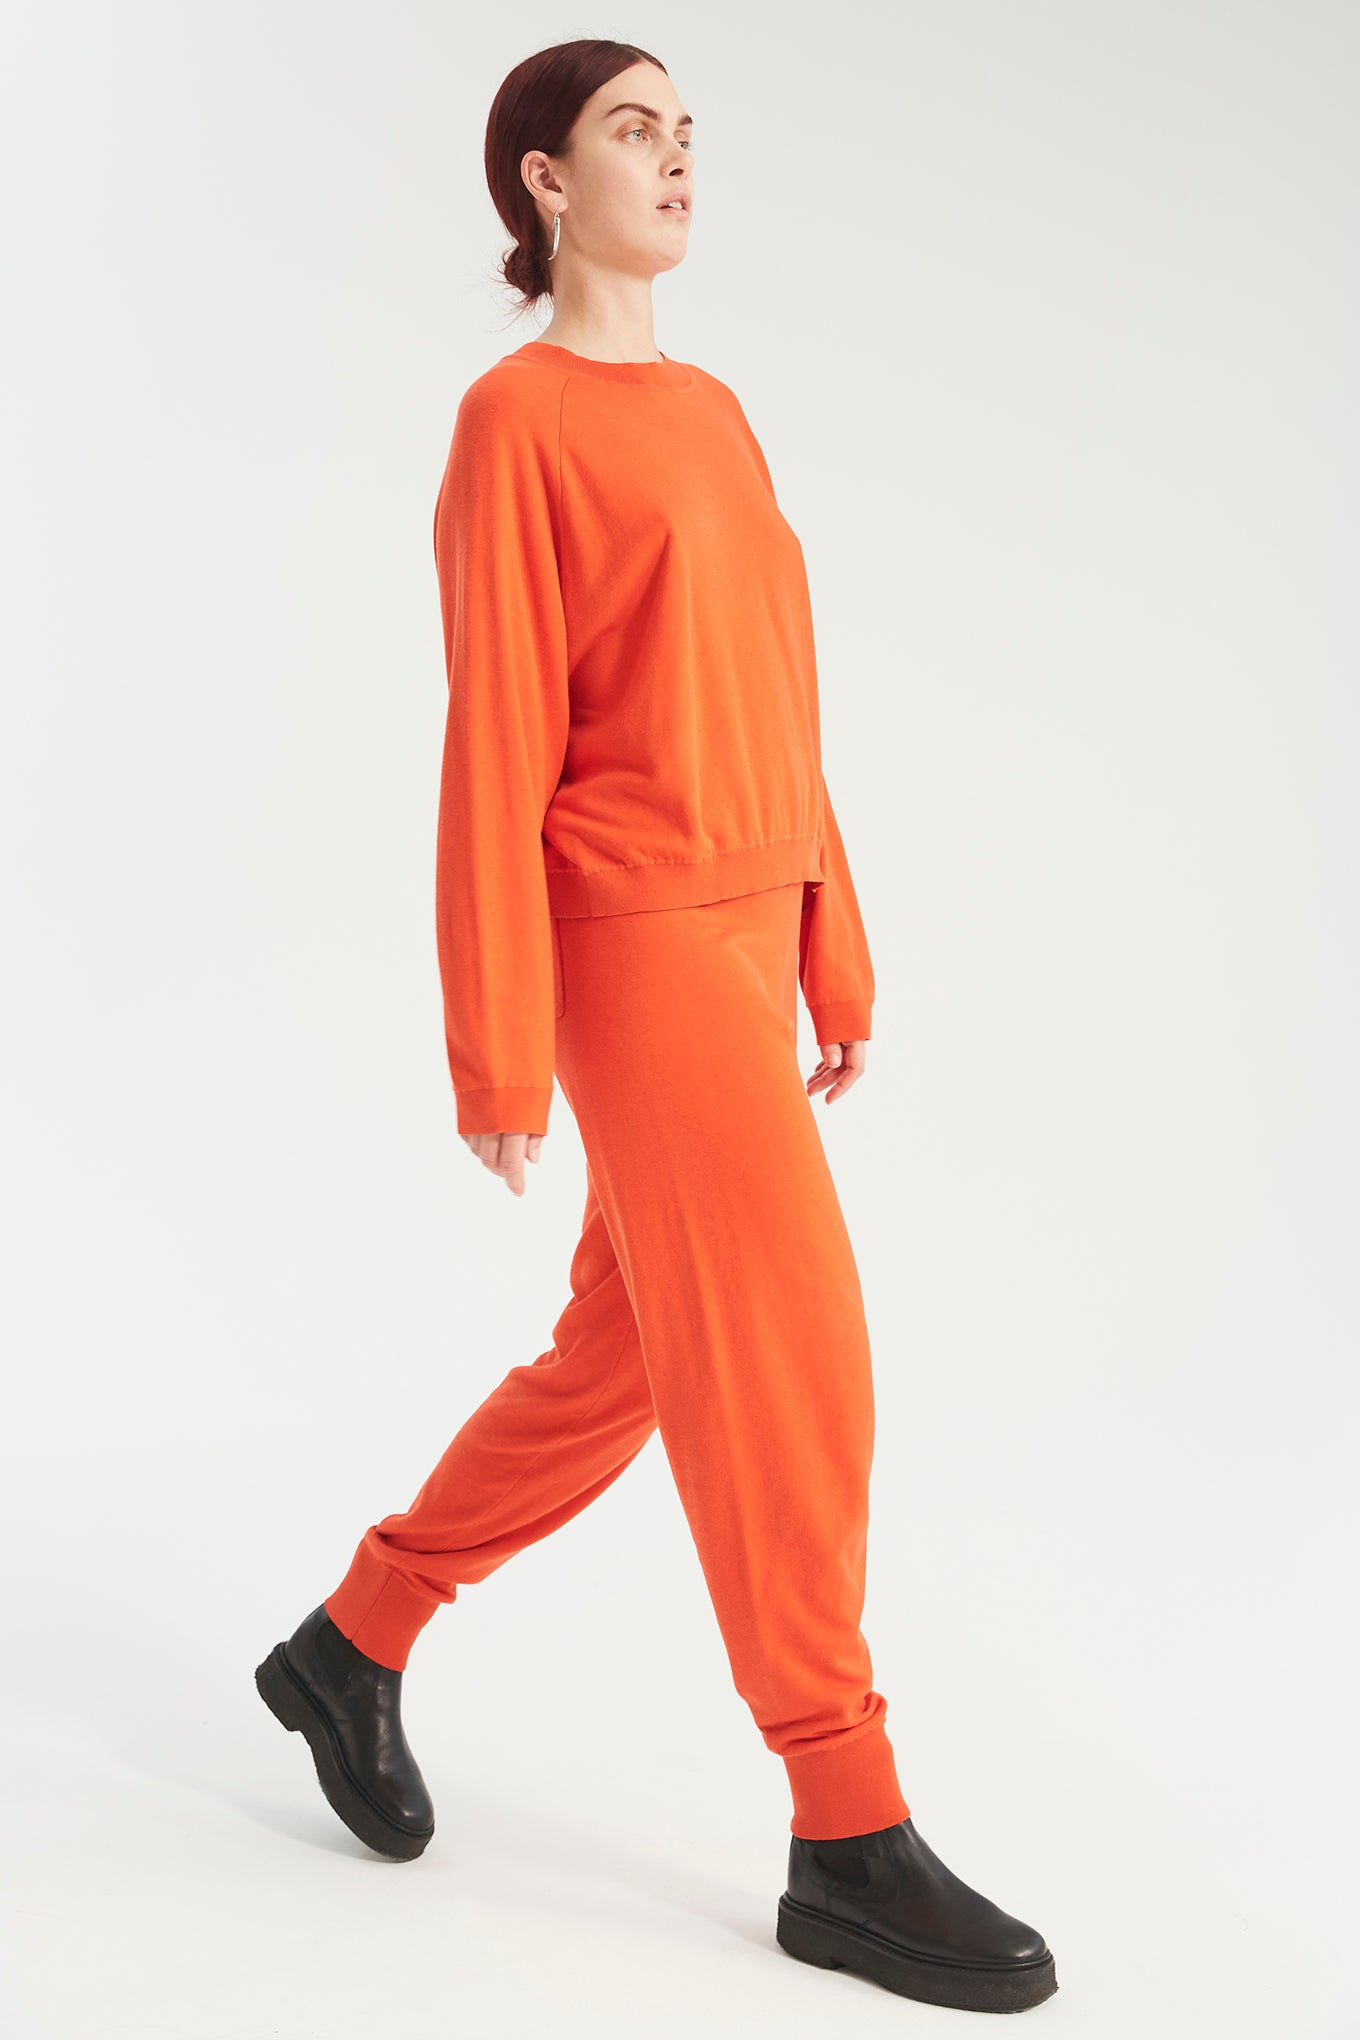 Kelly Knit - Bright Orange - Silk/Cotton